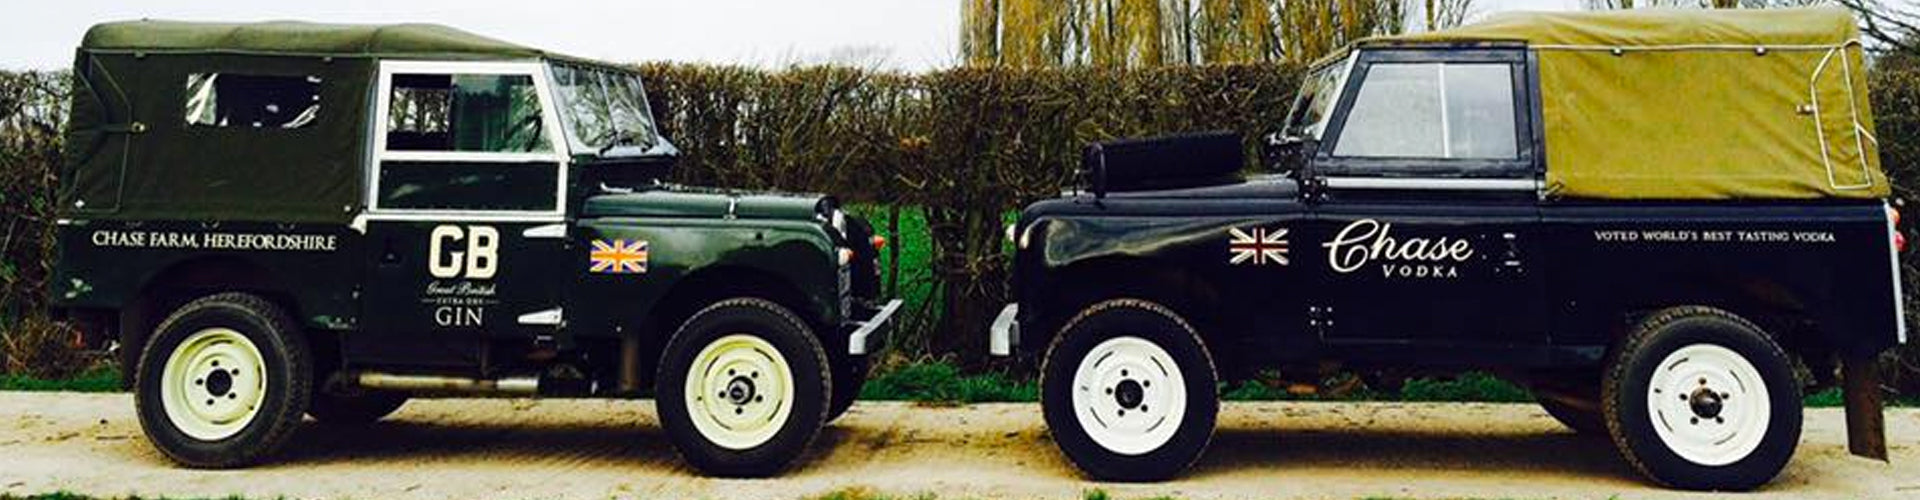 Land Rover Defenders in Chase Distillery Gin & Vodka Livery